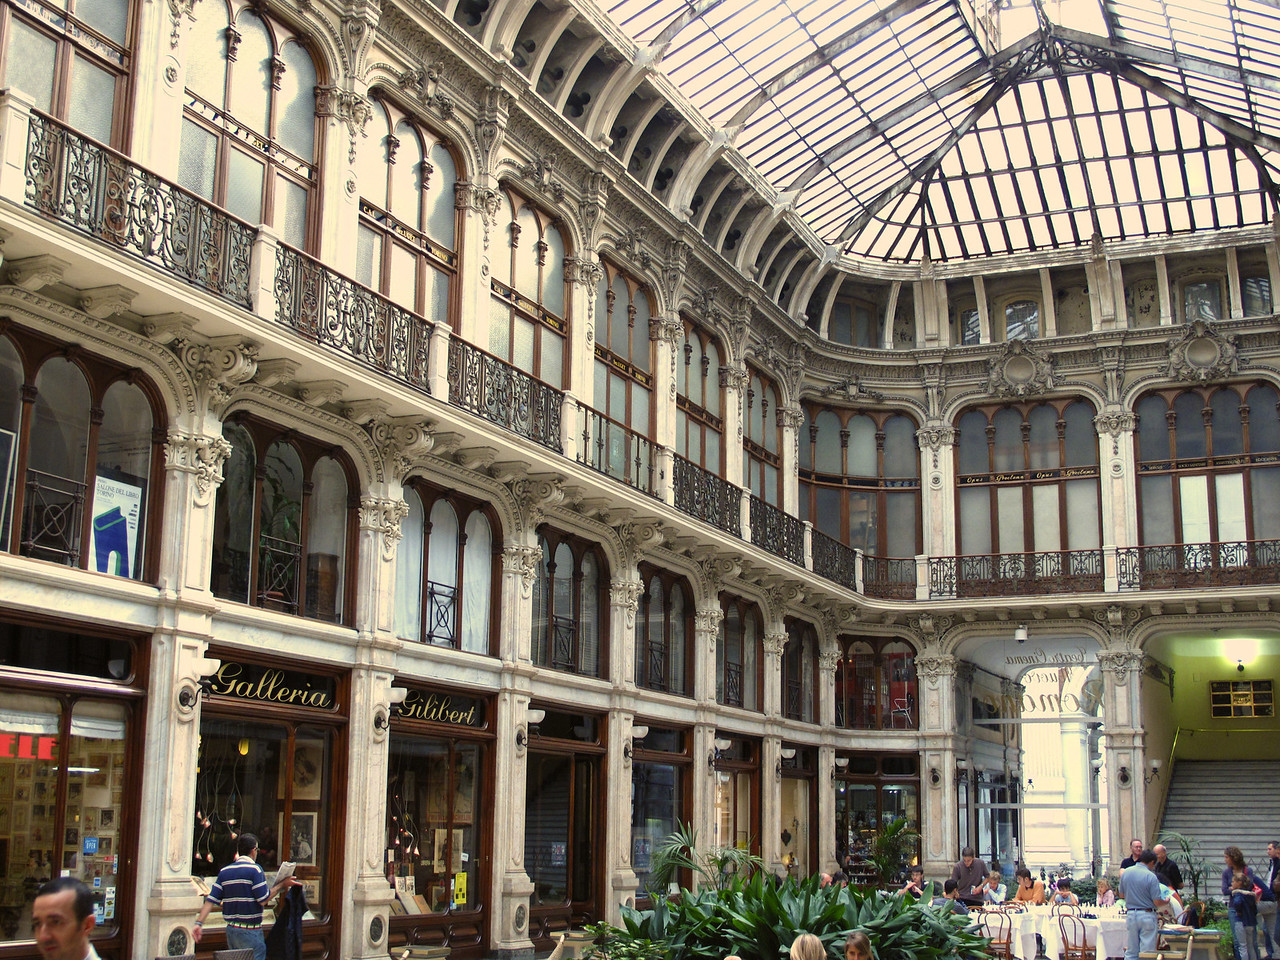 Built in 1874, the Glleria Subalpina is a shopping arcade that connects piazza Castello with piazza Carlo Alberto and is one of the most elegant areas of the city.